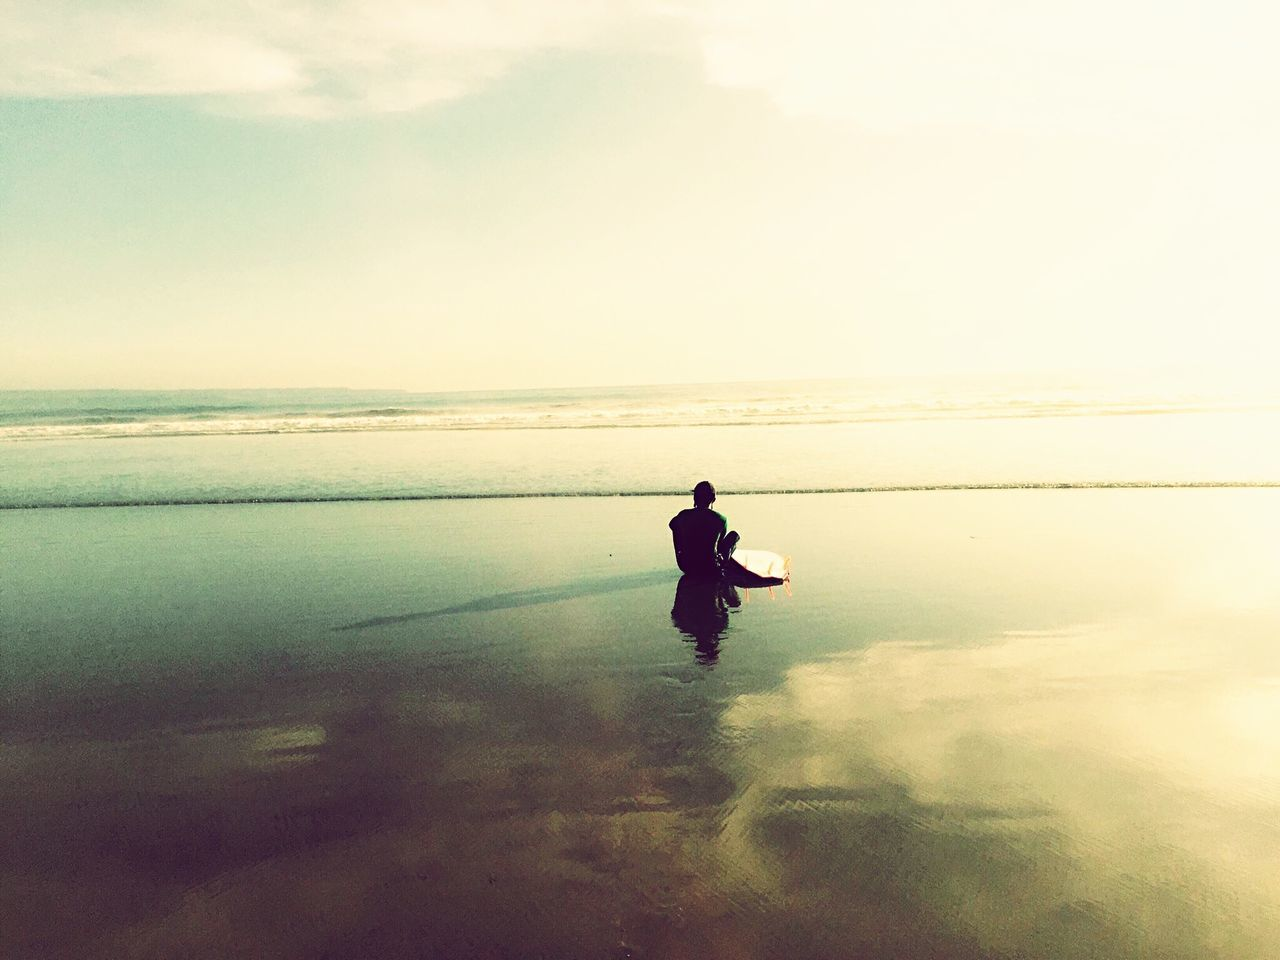 sea, water, real people, one person, nature, scenics, beauty in nature, sky, leisure activity, tranquil scene, reflection, horizon over water, tranquility, lifestyles, full length, outdoors, men, standing, sunset, beach, day, young adult, people